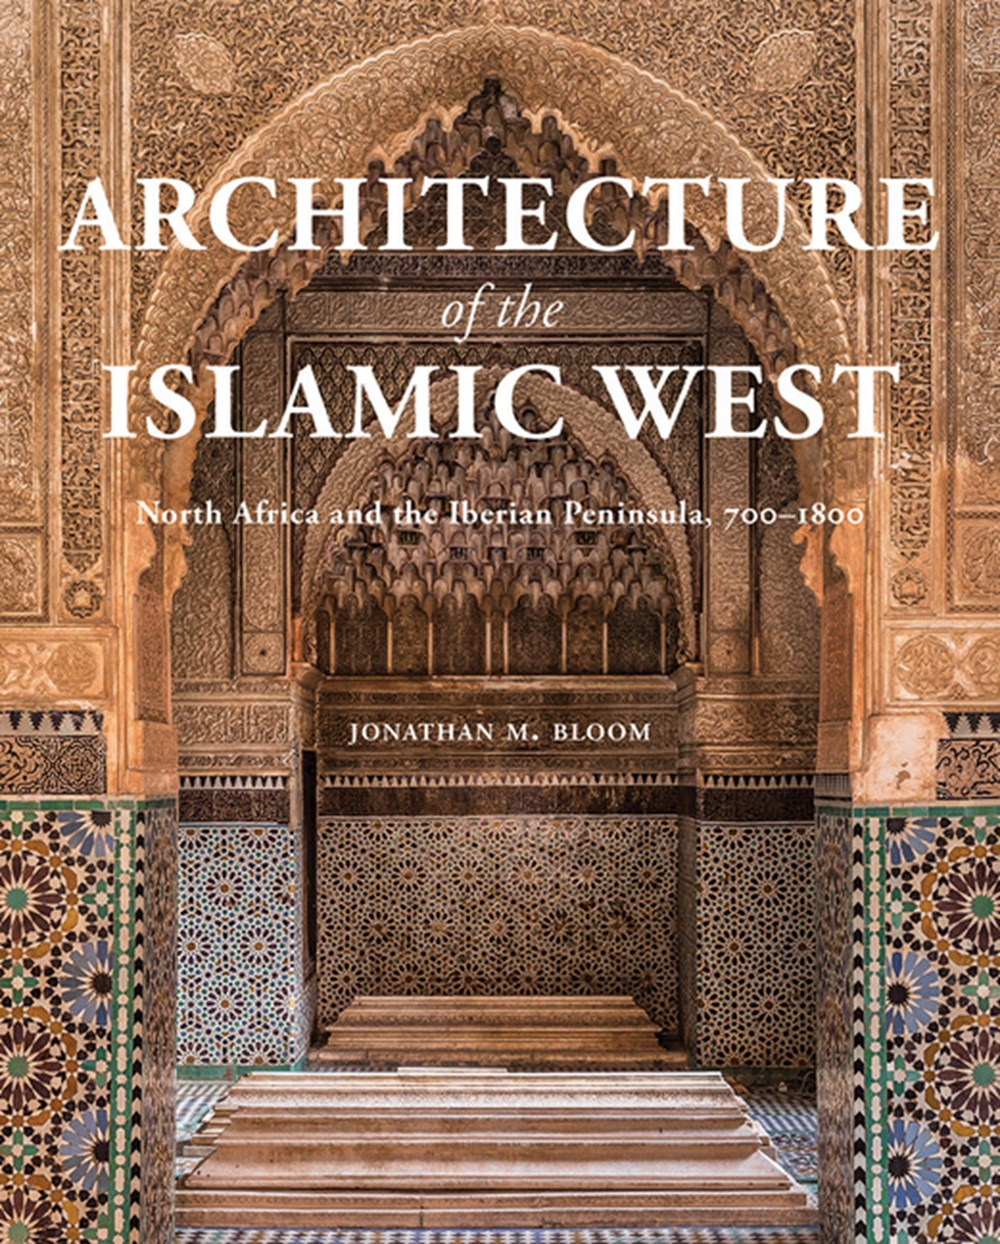 Architecture of the Islamic West North Africa and the Iberian Peninsula, 700-1800